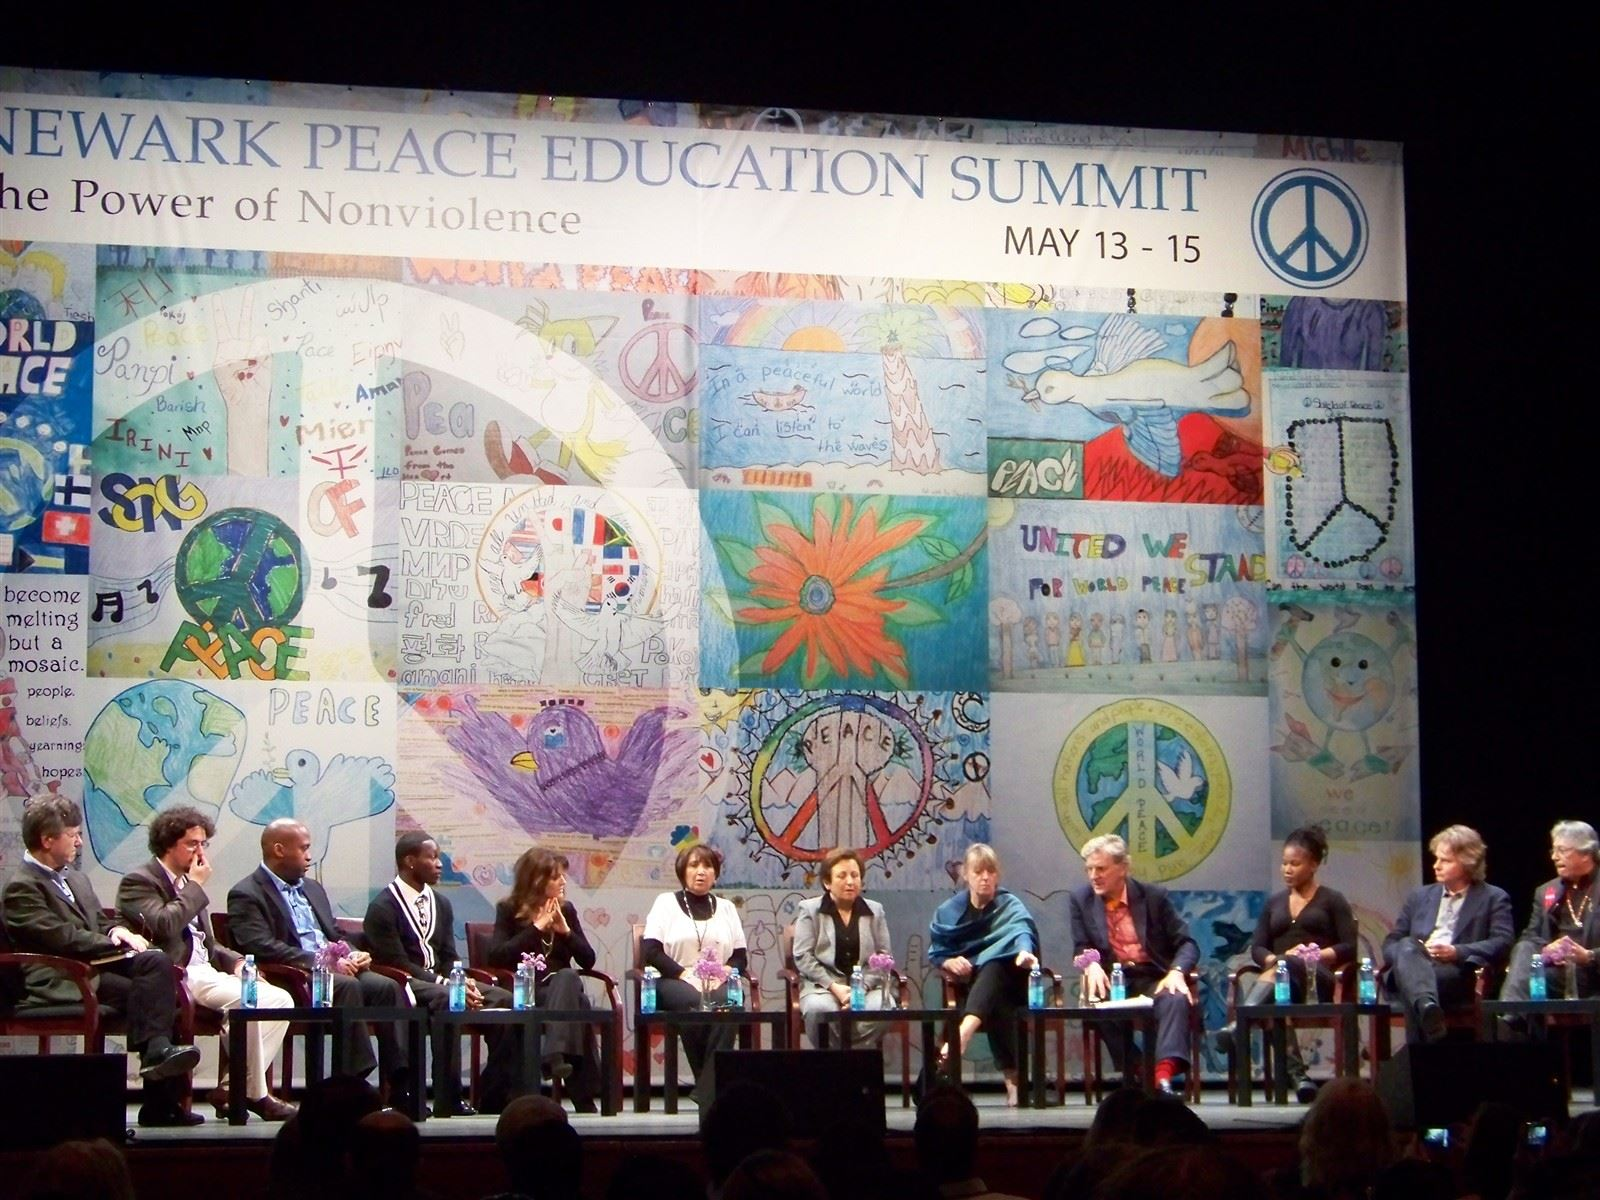 Peace Mural @NewarkPeace : Panelists onstage at the Newark Peace Education Conference, May 2011